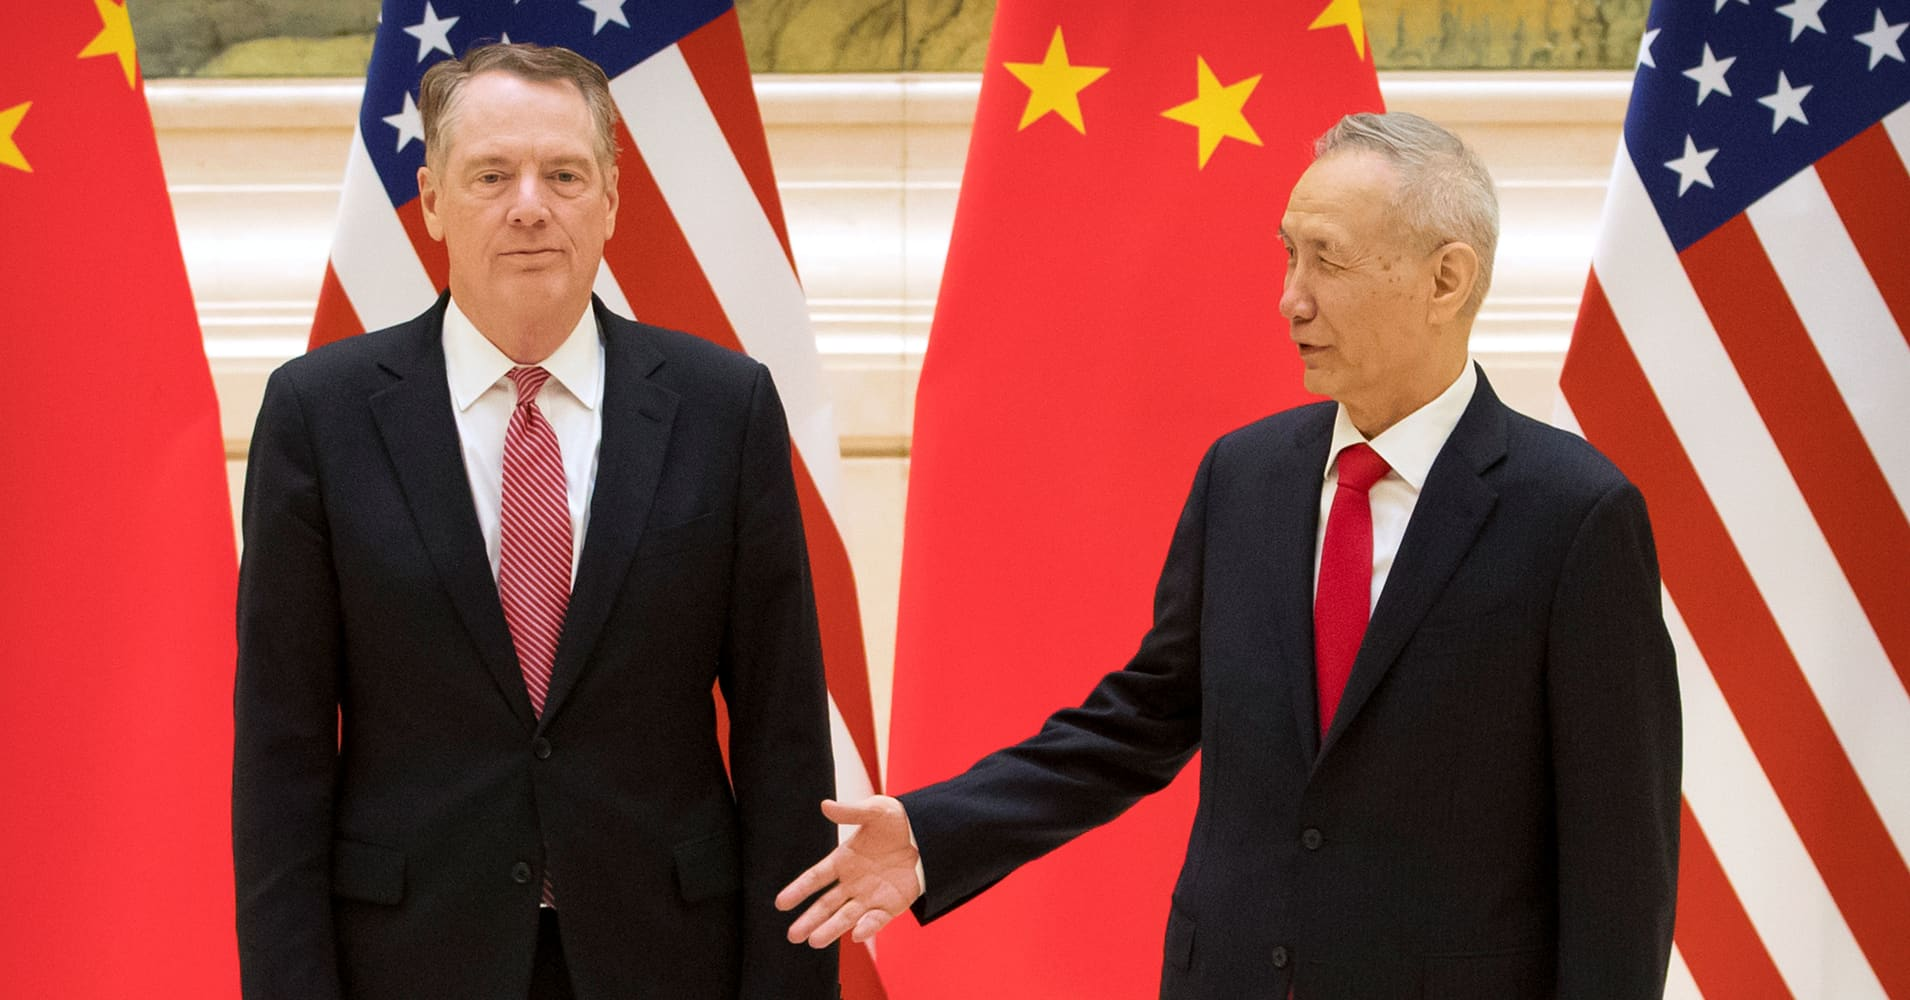 US-China trade war: Deal needs enforcement, says Chamber of Commerce